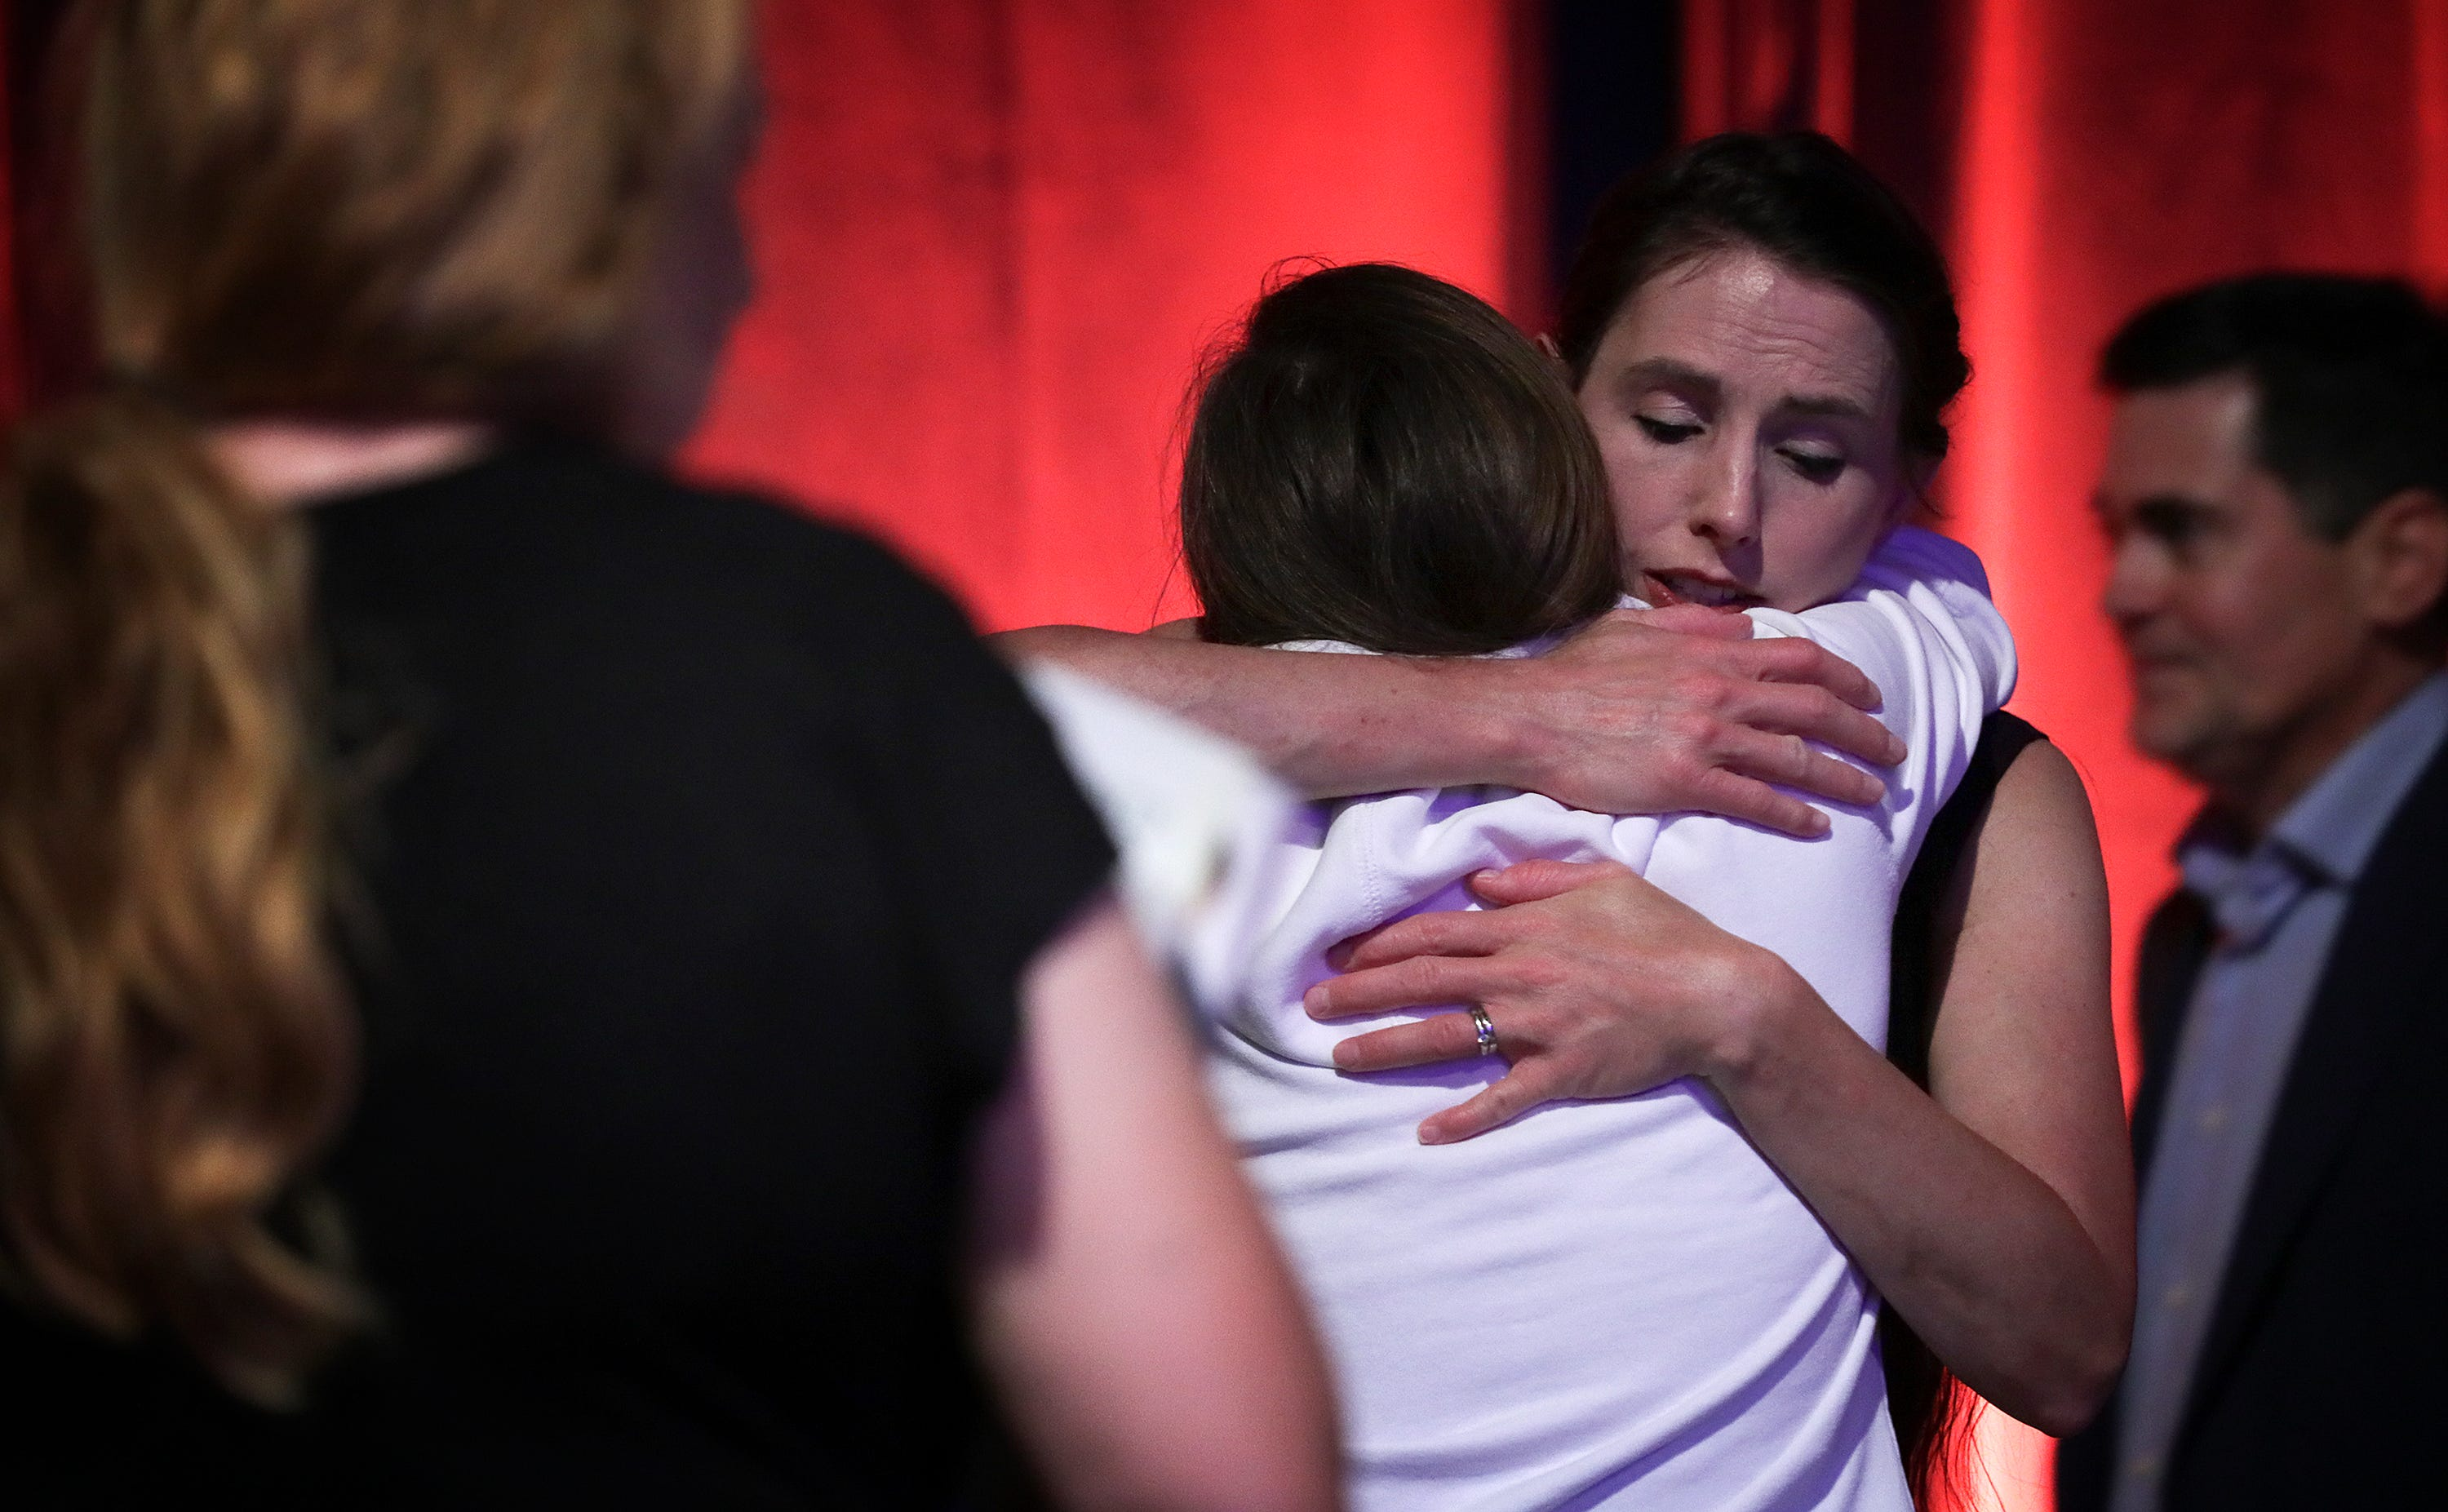 Rachael Denhollander hugs Madeline, an abuse survivor, after a panel discussion on abuse in the church the night before the Southern Baptist Convention opened in Birmingham, Alabama.